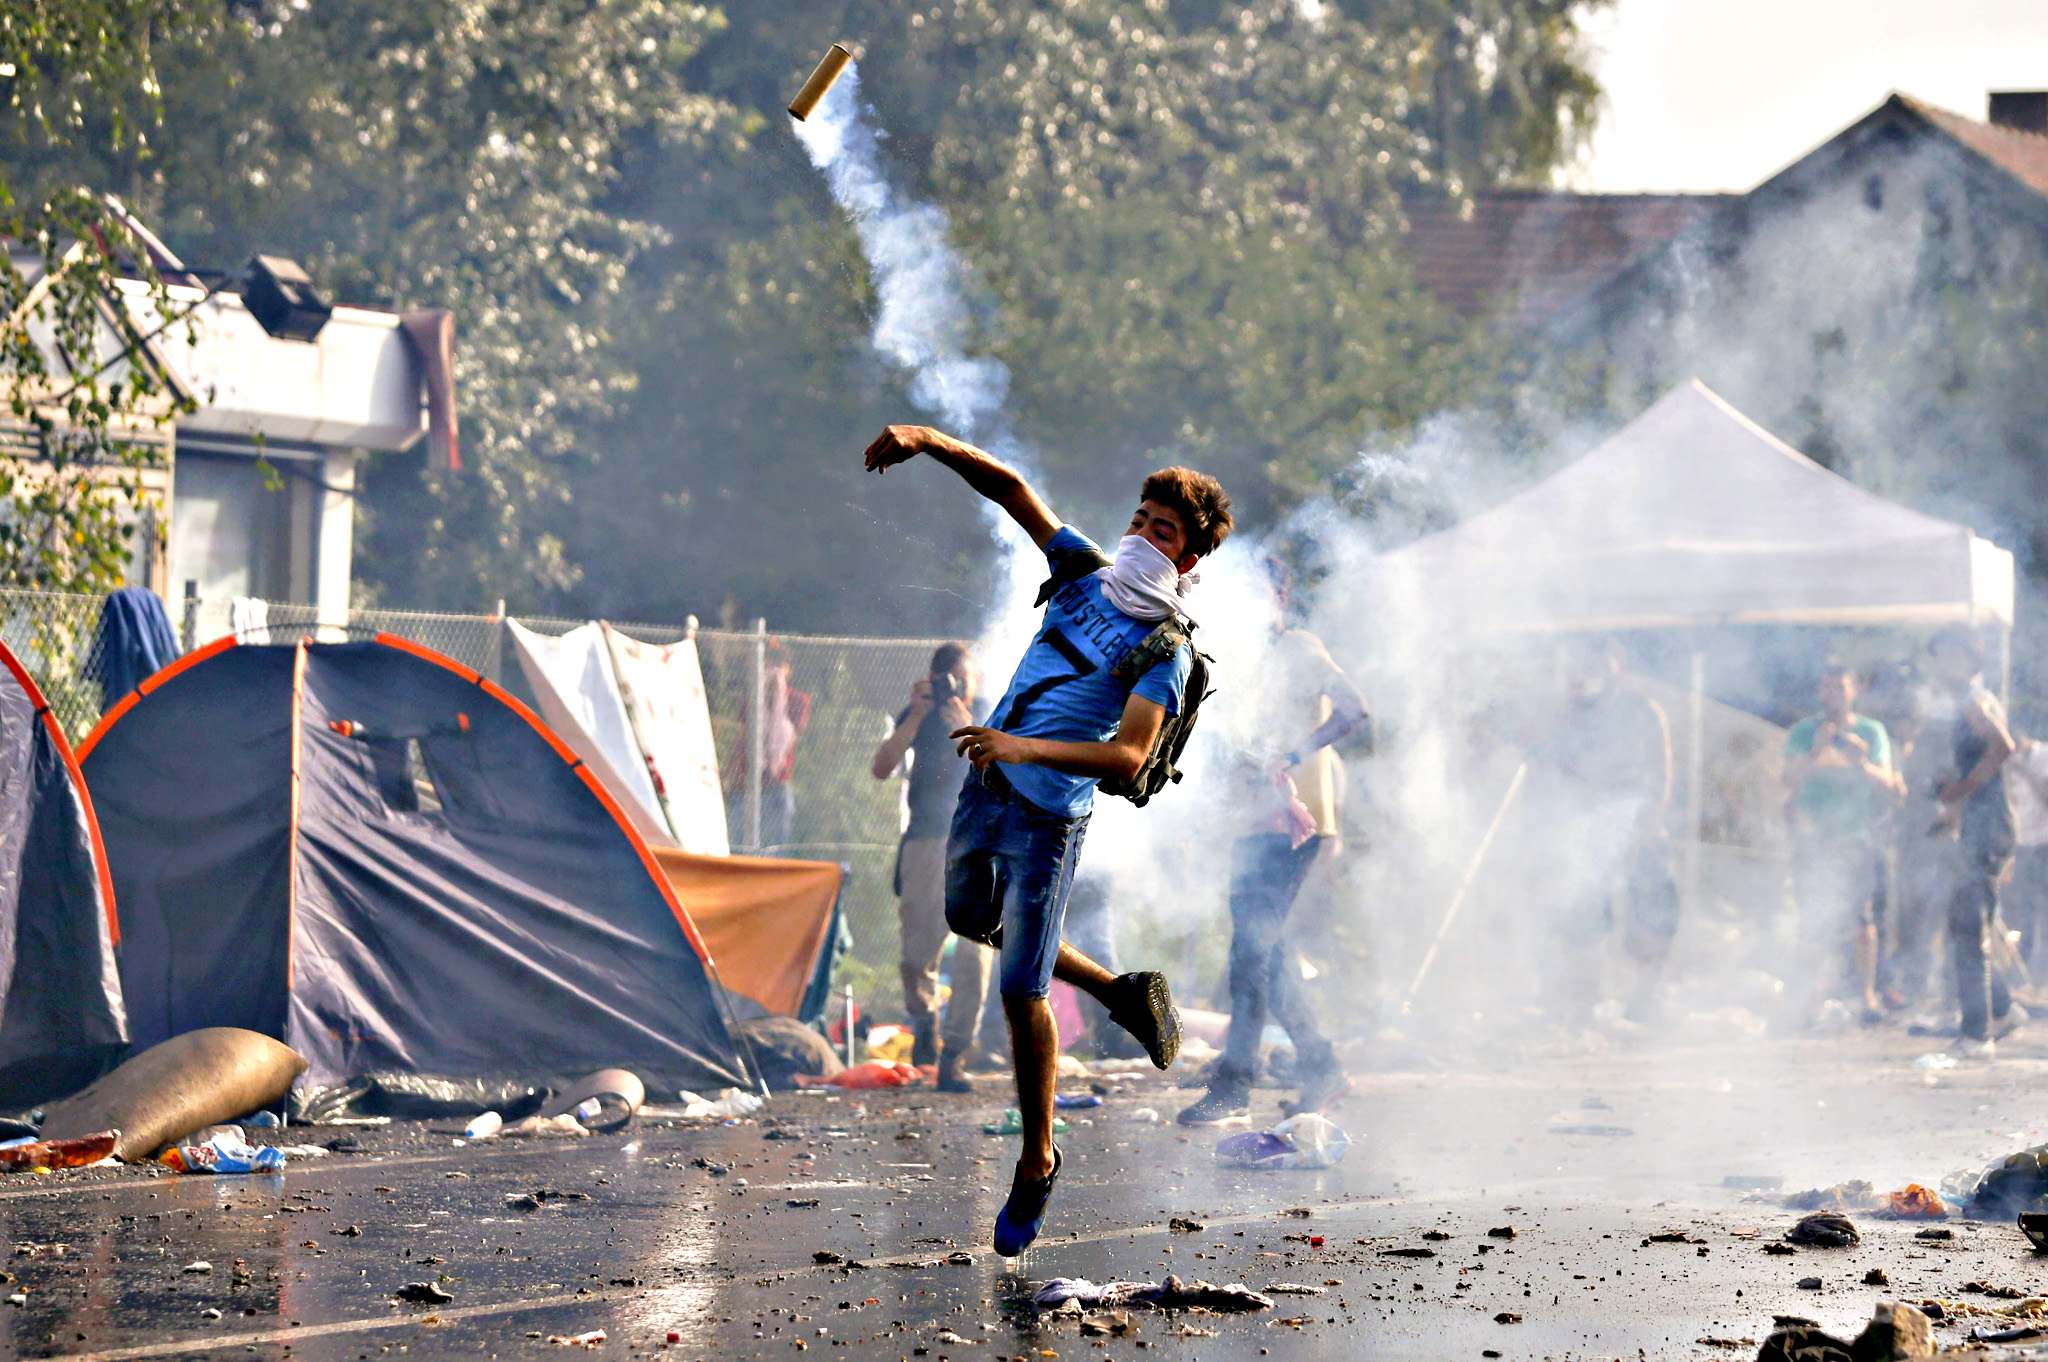 A migrant protests as Hungarian riot police fires tear gas and water cannon at the border crossing with Serbia in Roszke...A migrant protests as Hungarian riot police fires tear gas and water cannon at the border crossing with Serbia in Roszke, Hungary September 16, 2015. Hungarian police fired tear gas and water cannon at protesting migrants demanding they be allowed to enter from Serbia on Wednesday on the second day of a border crackdown